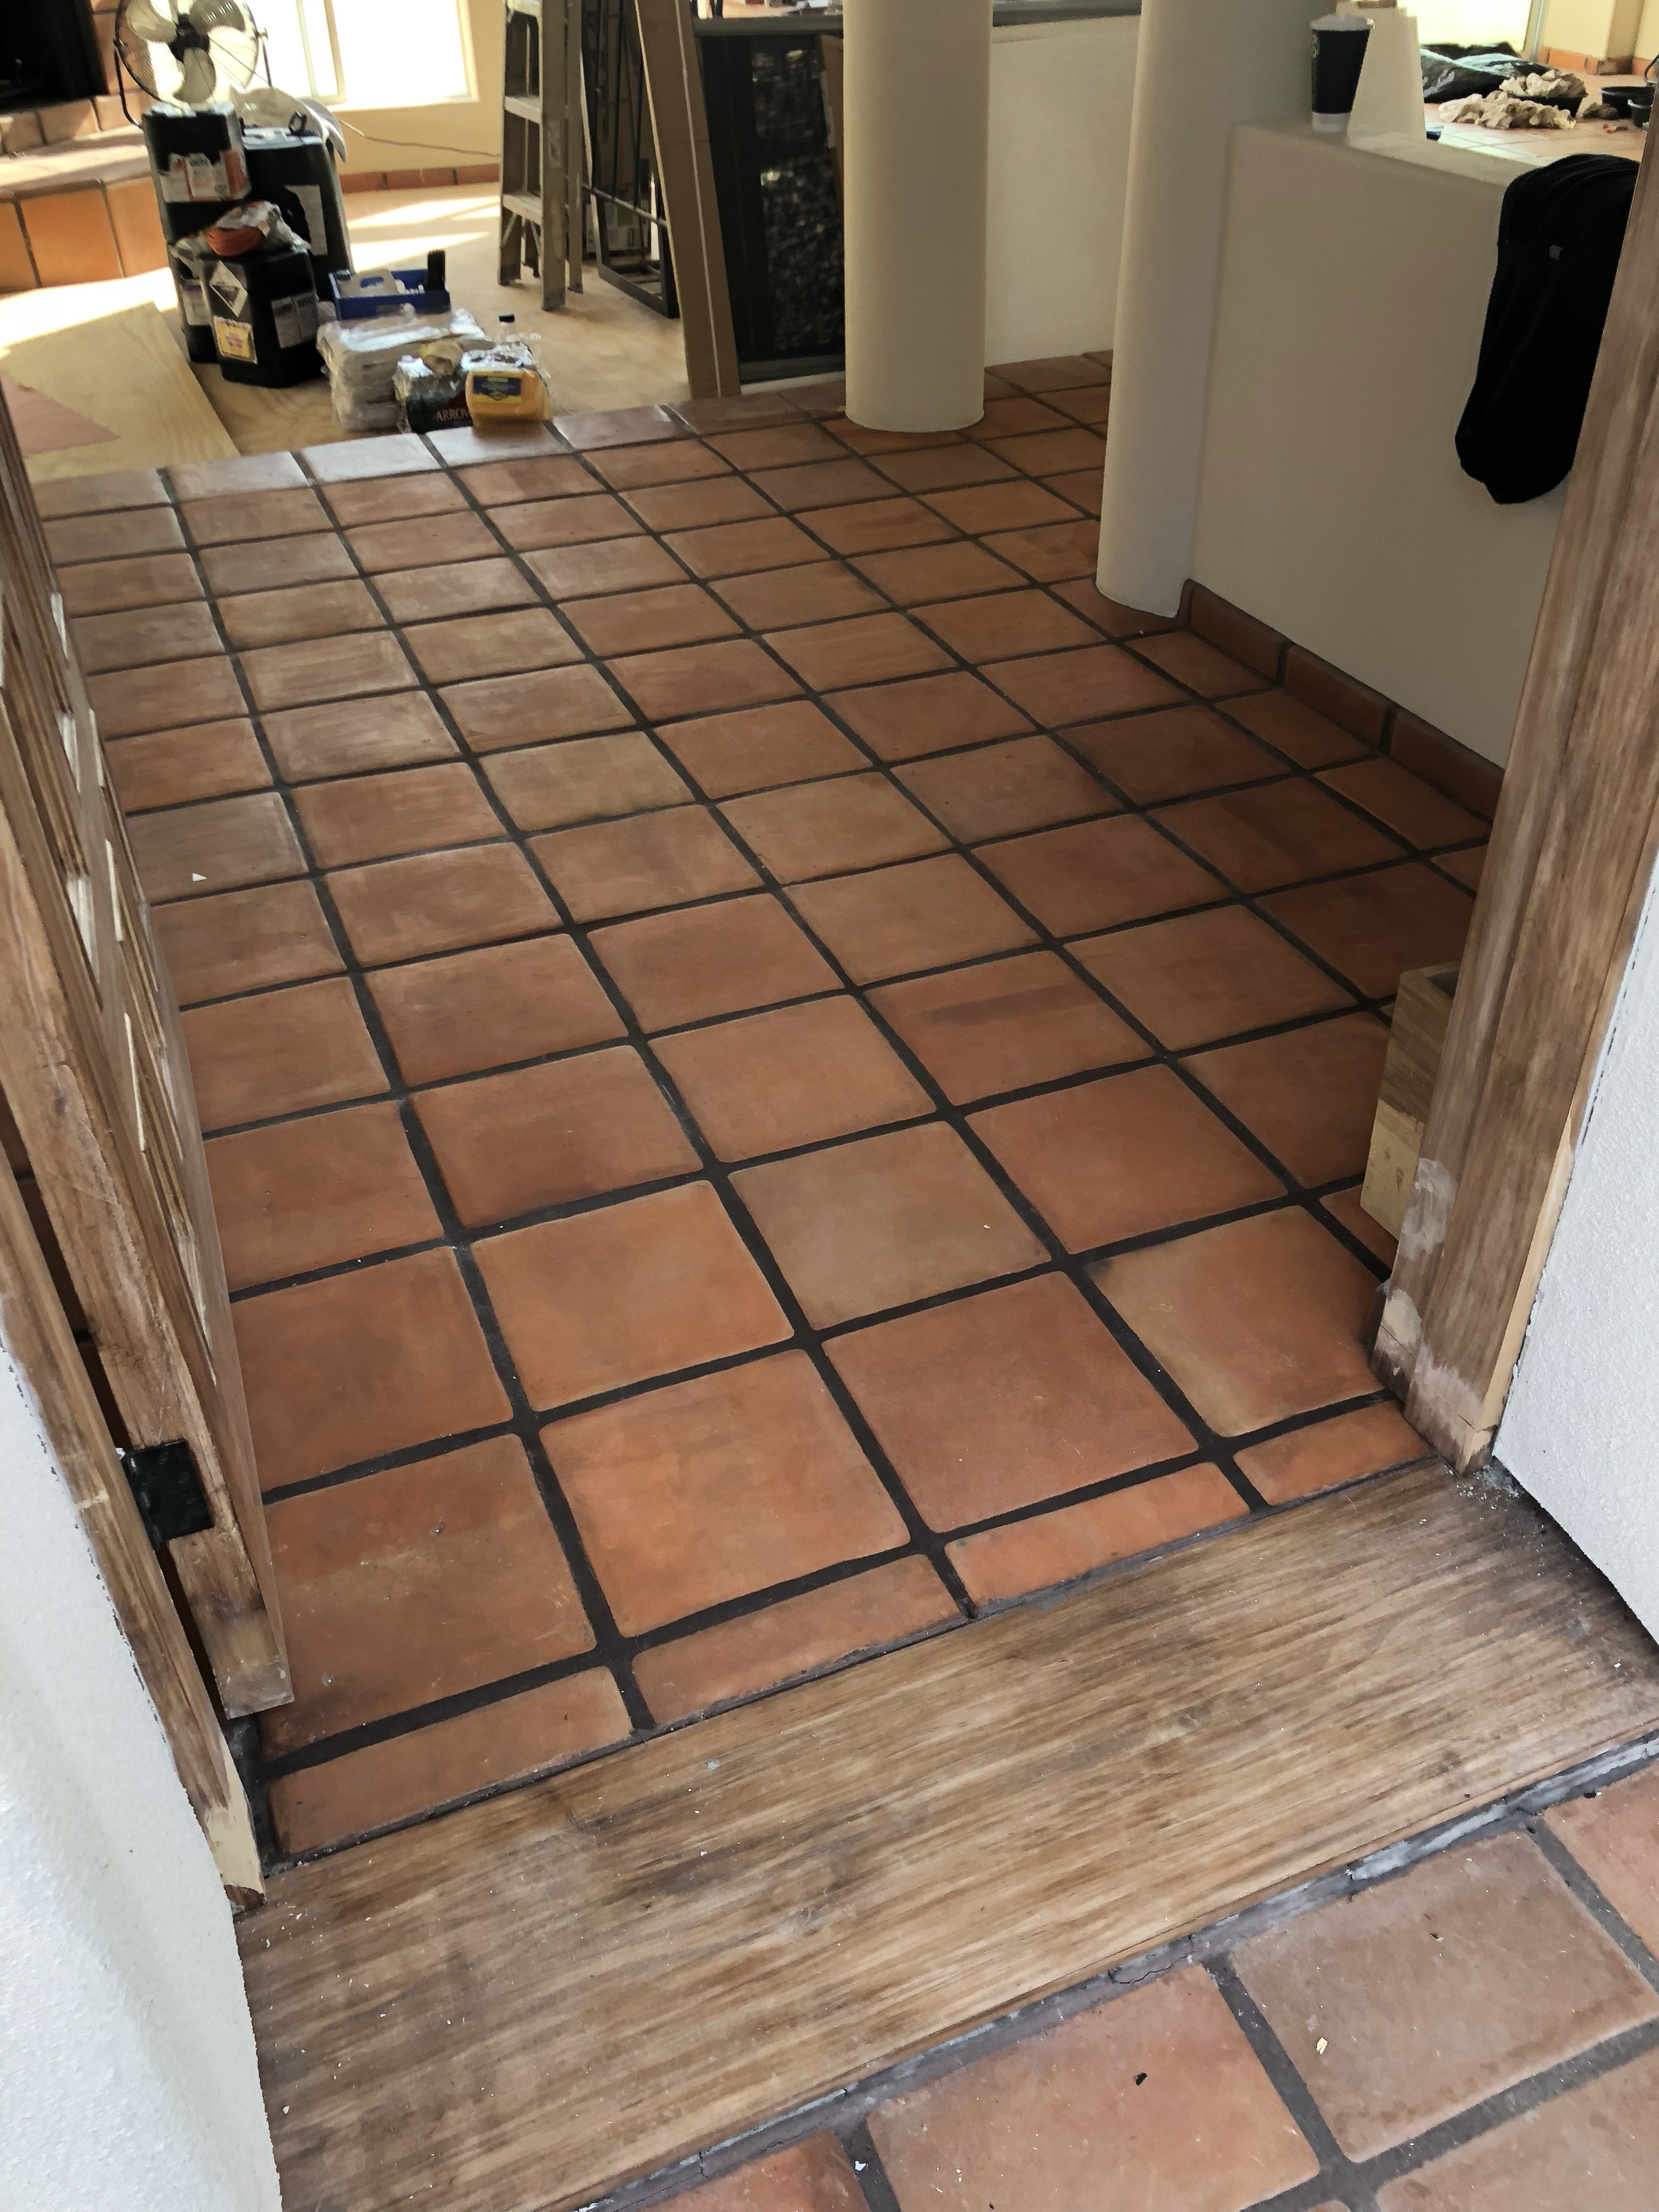 Restoring Terracotta Tecate Paver Tiles Spanish Style Homes Pueblo Style House Spanish Style